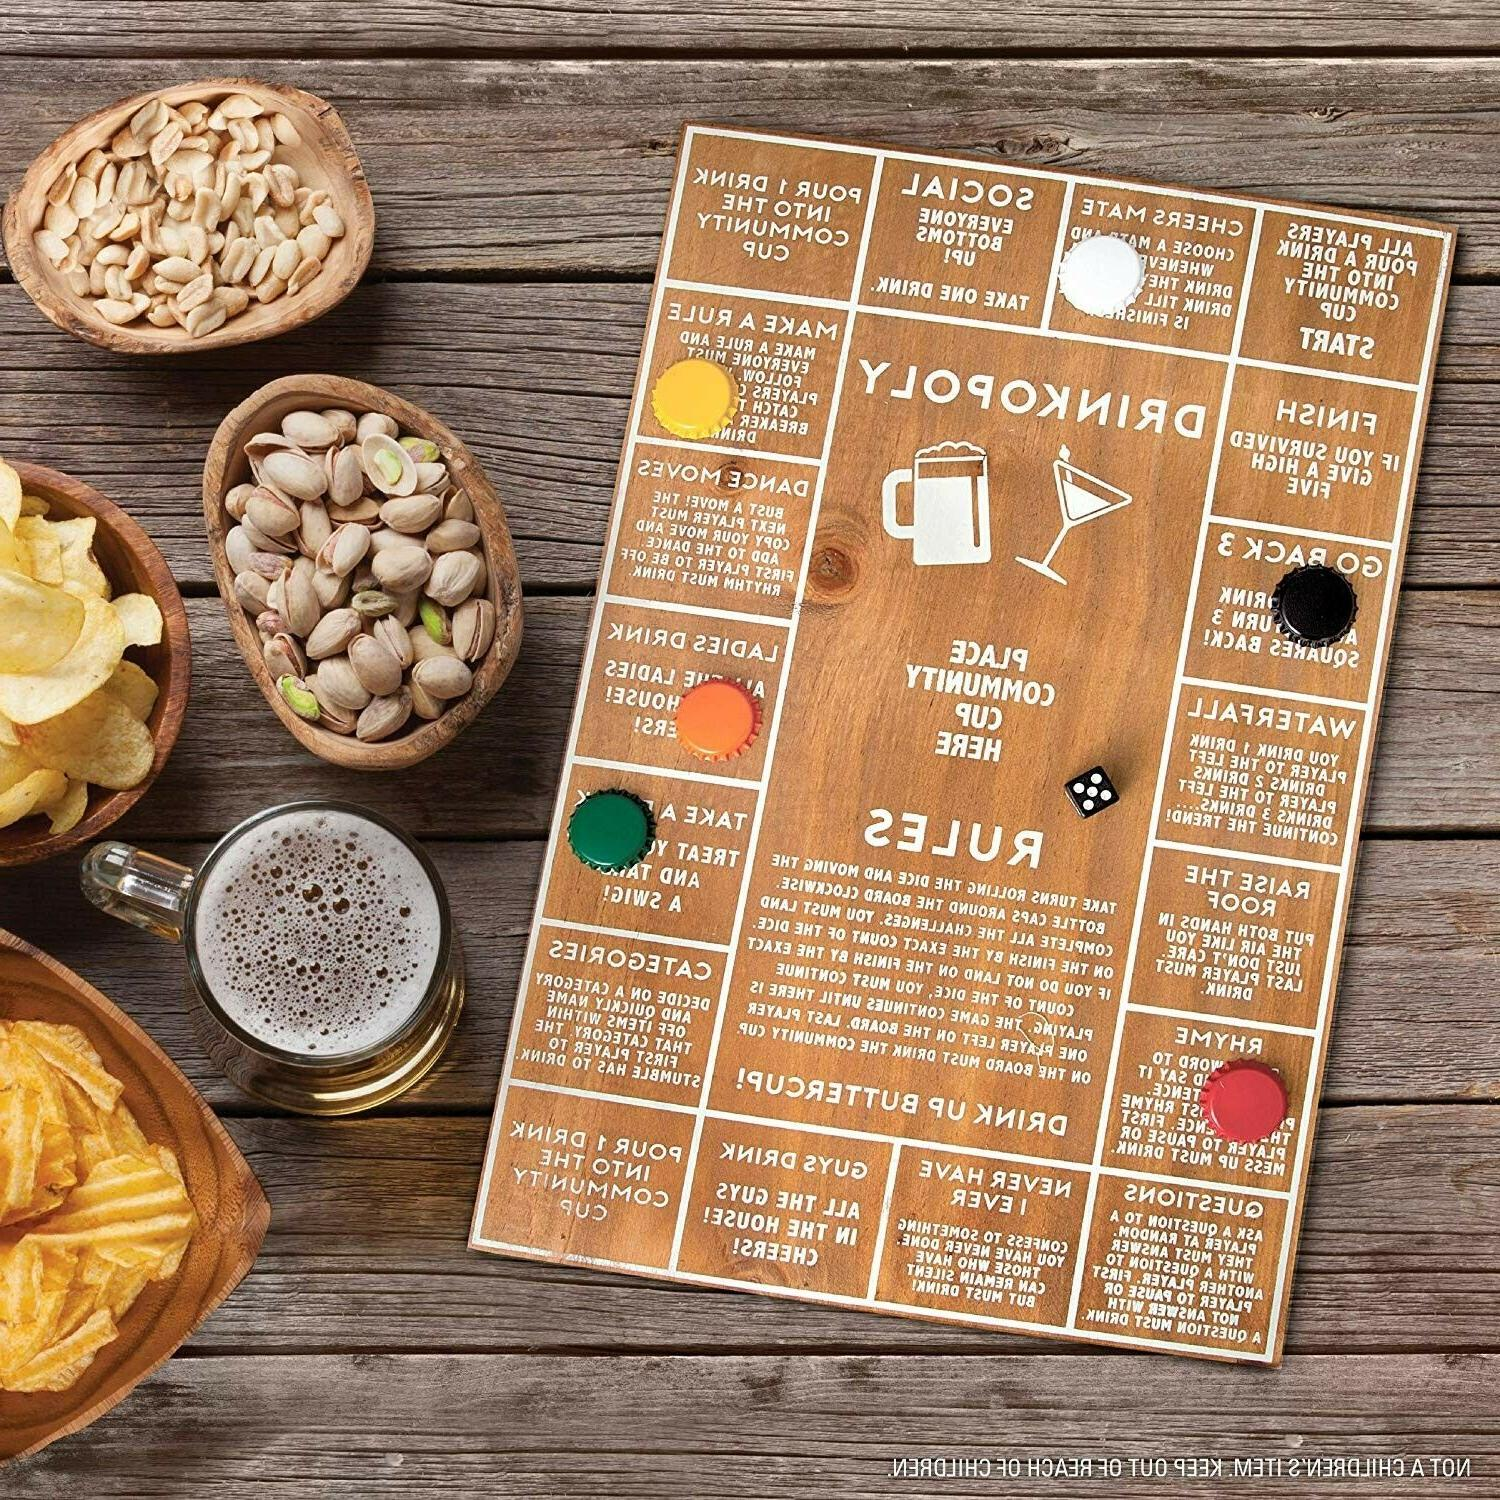 refinery drinkopoly wooden board drinking game